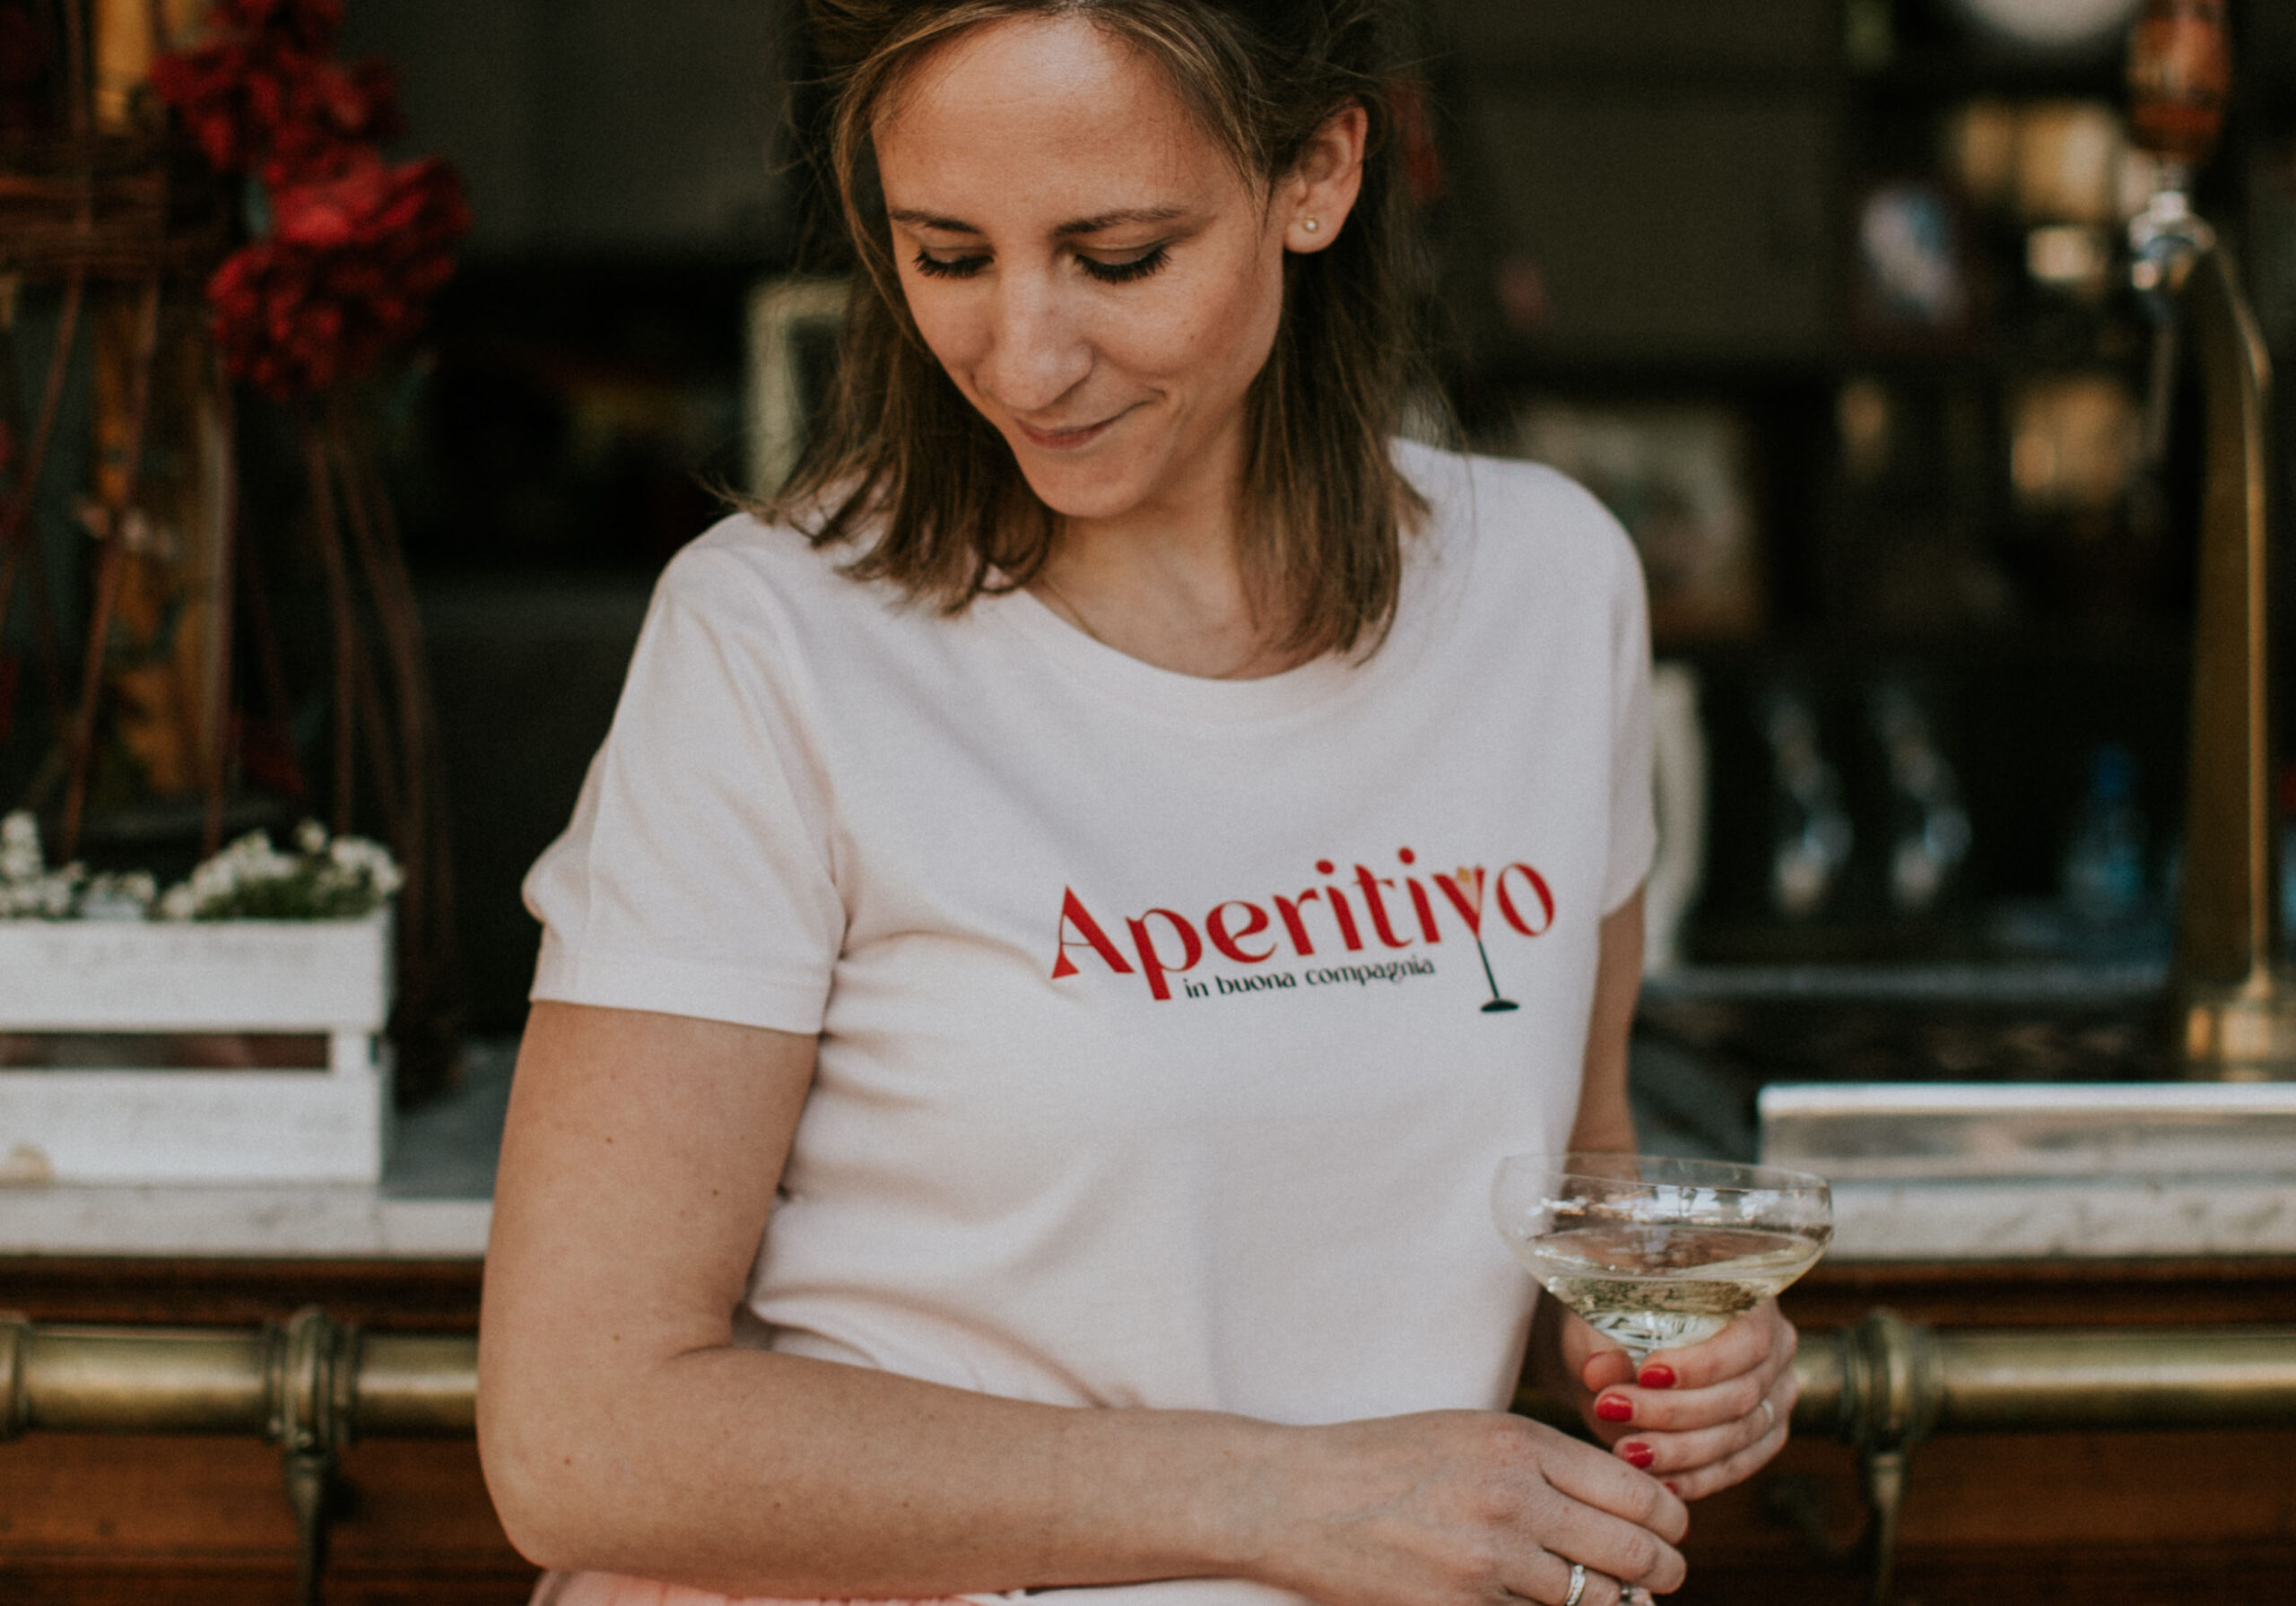 Aperitivo t-shirt by Mangos on Monday